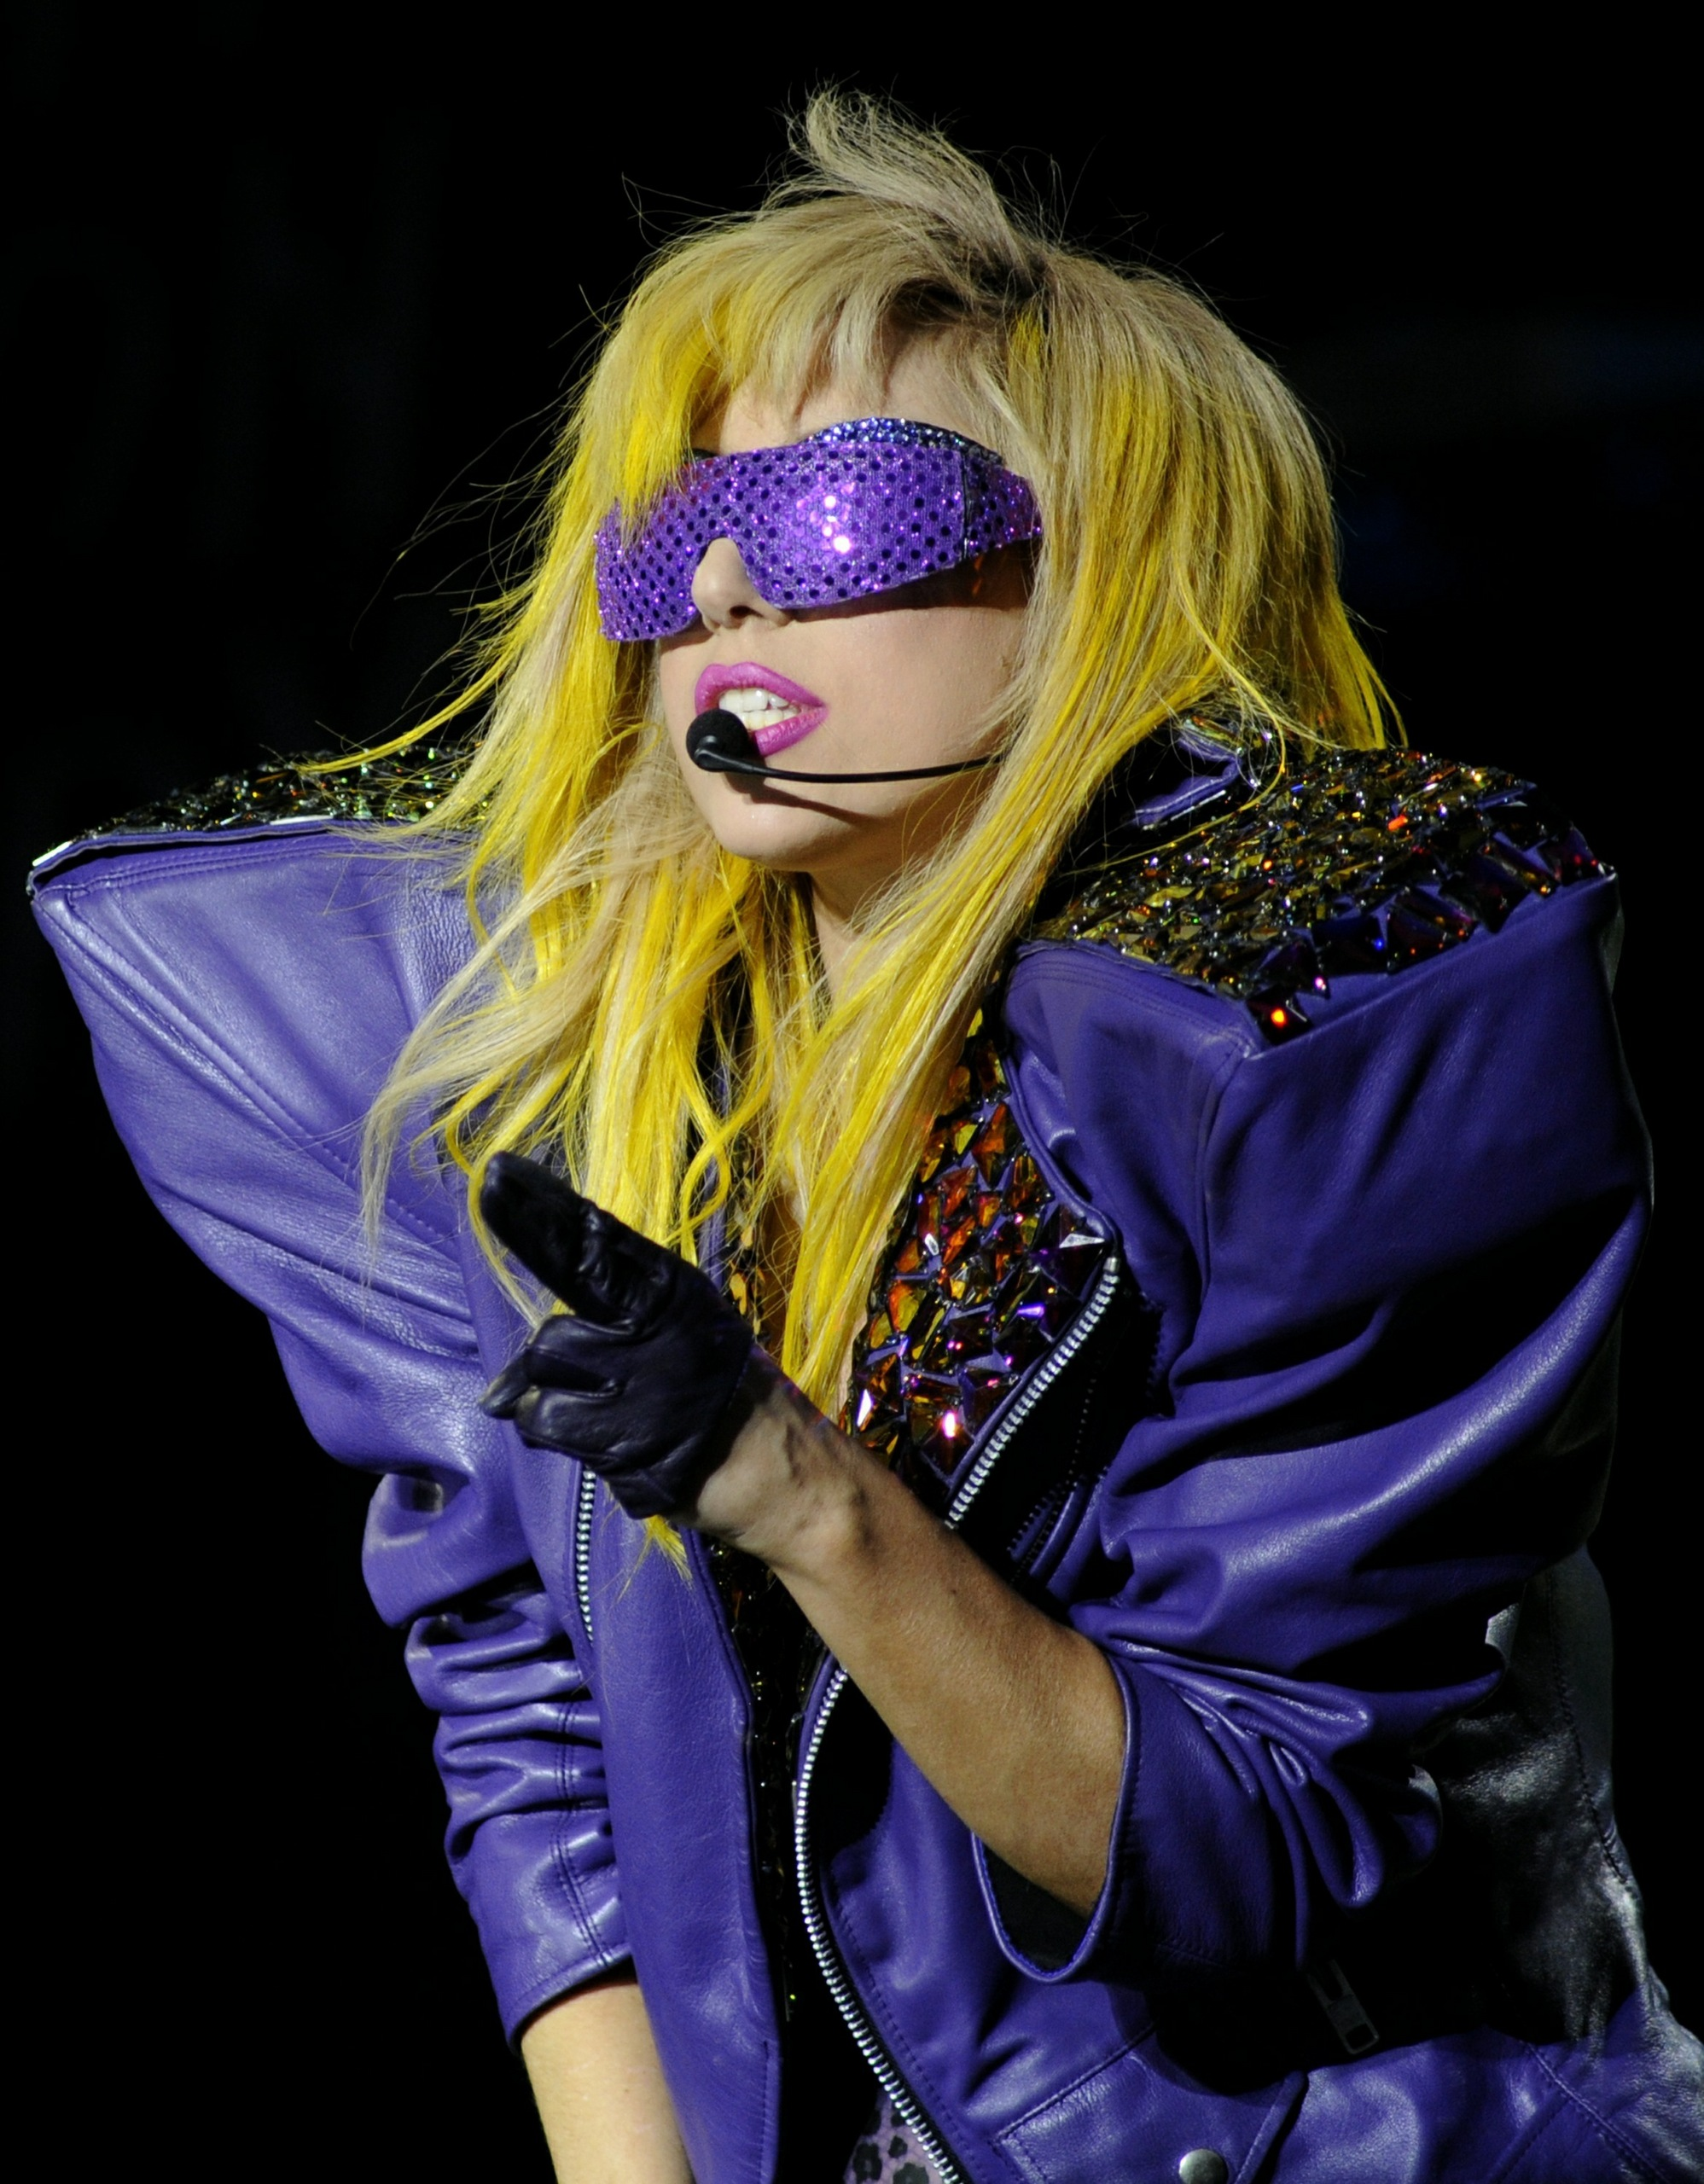 Lady gaga the monster ball tour at madison square garden free download